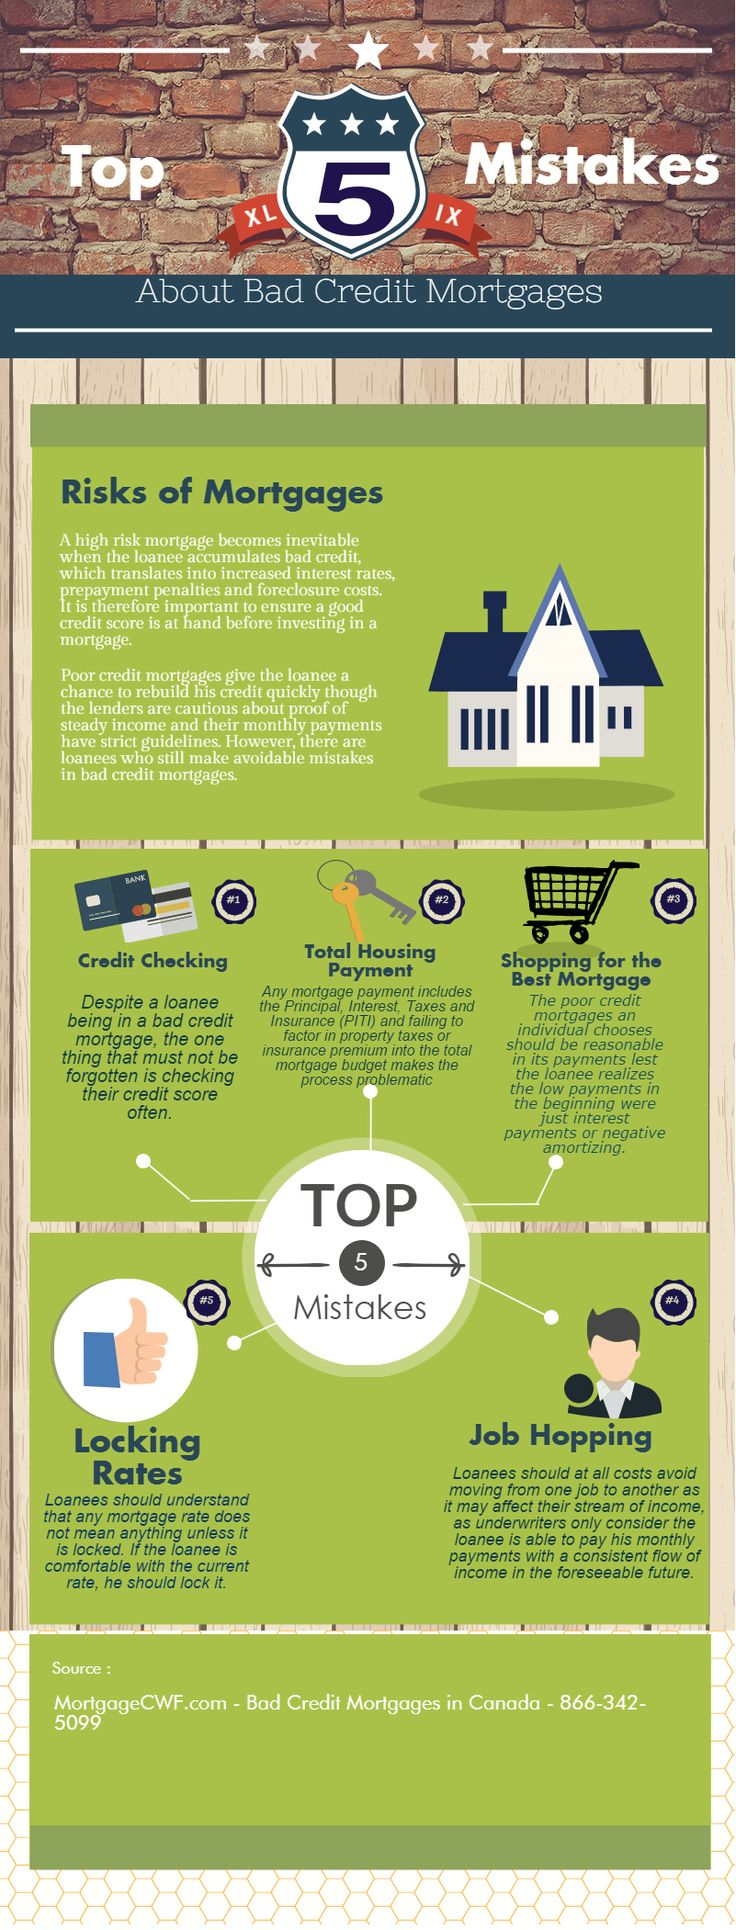 Here are presented the most common mistakes when you are dealing with bad credit mortgage